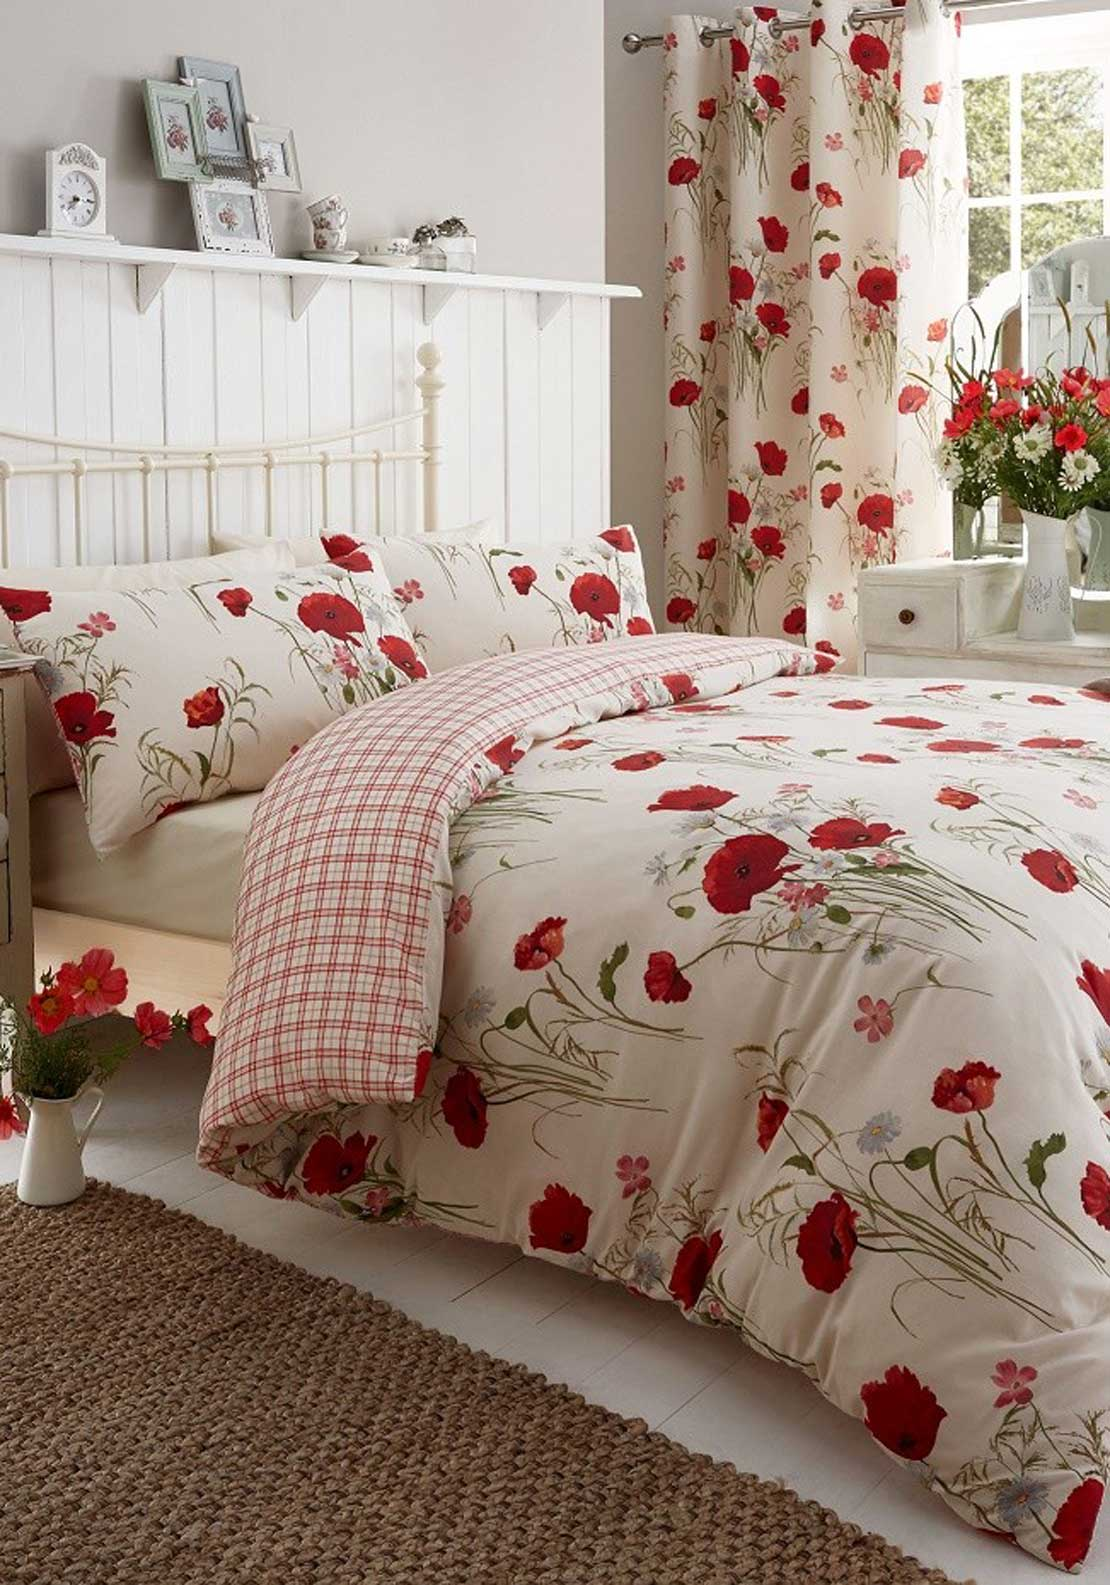 Catherine Lansfield Wild Poppies Duvet Cover Set, Multi Cream & Red Floral Print